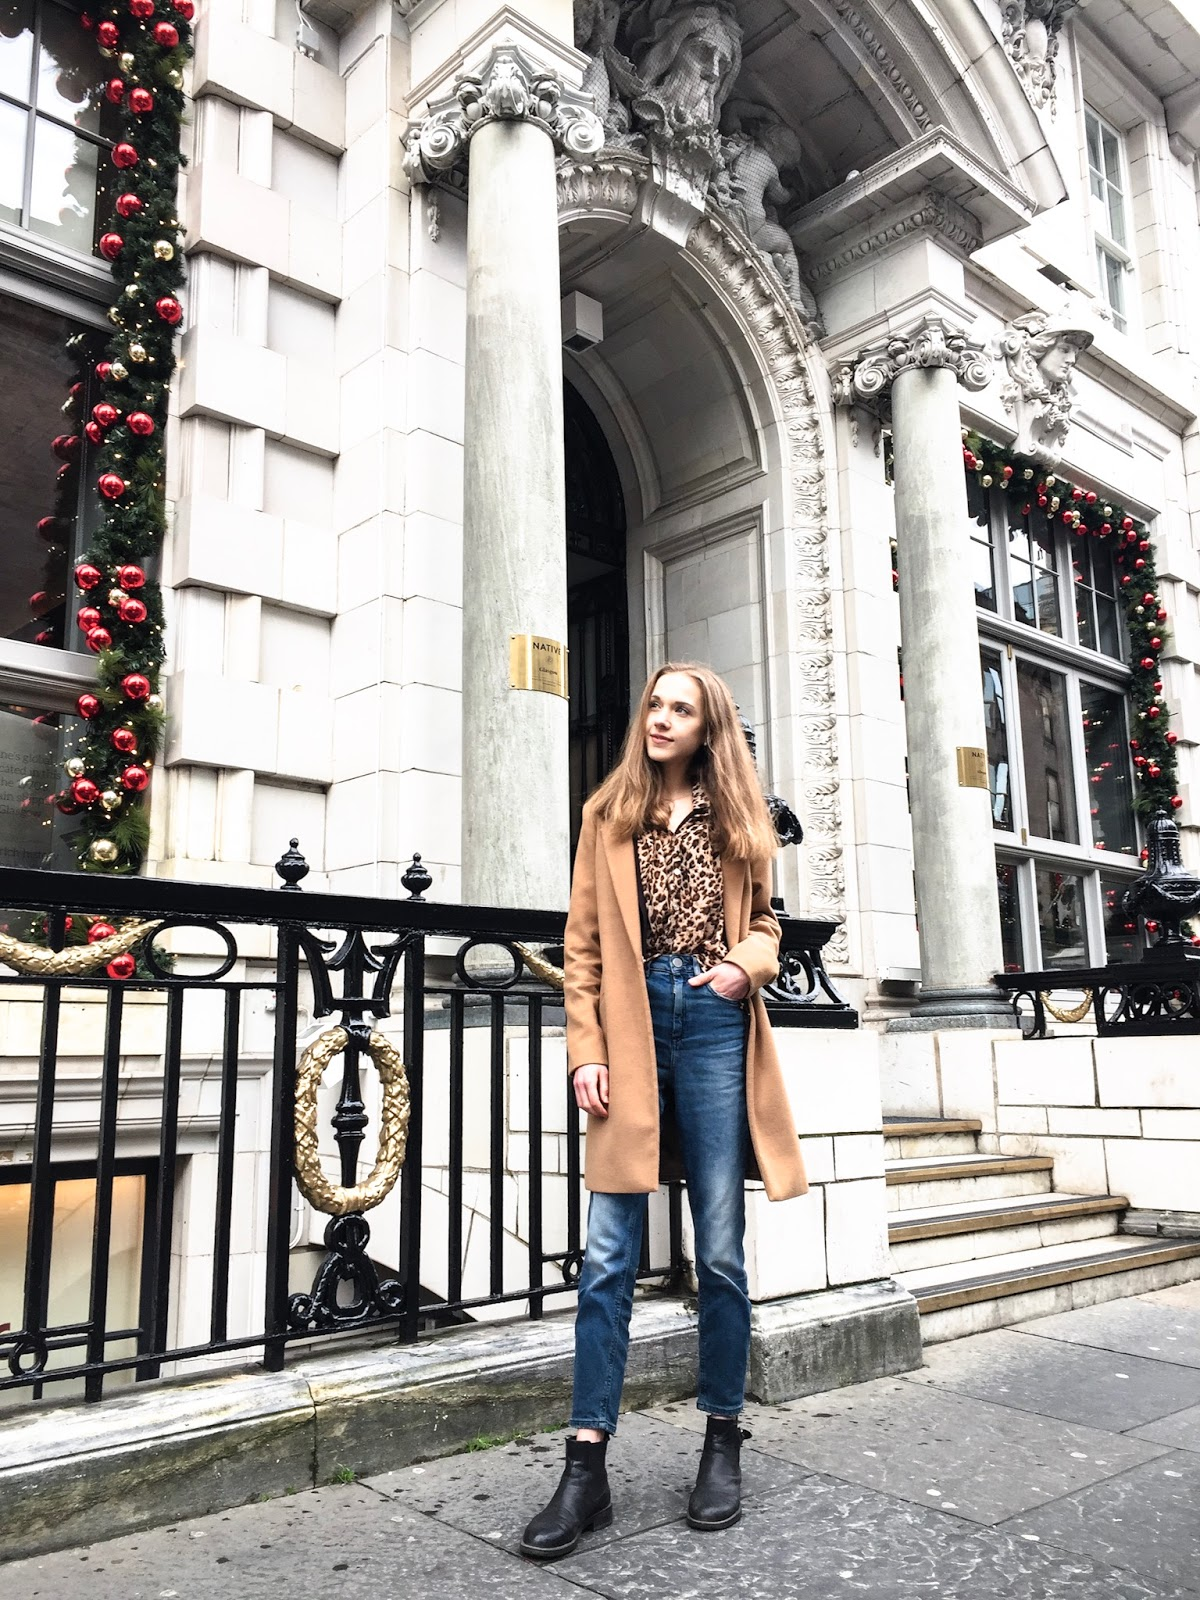 fashion-blogger-outfit-camel-coat-leopard-print-shirt-mom-jeans